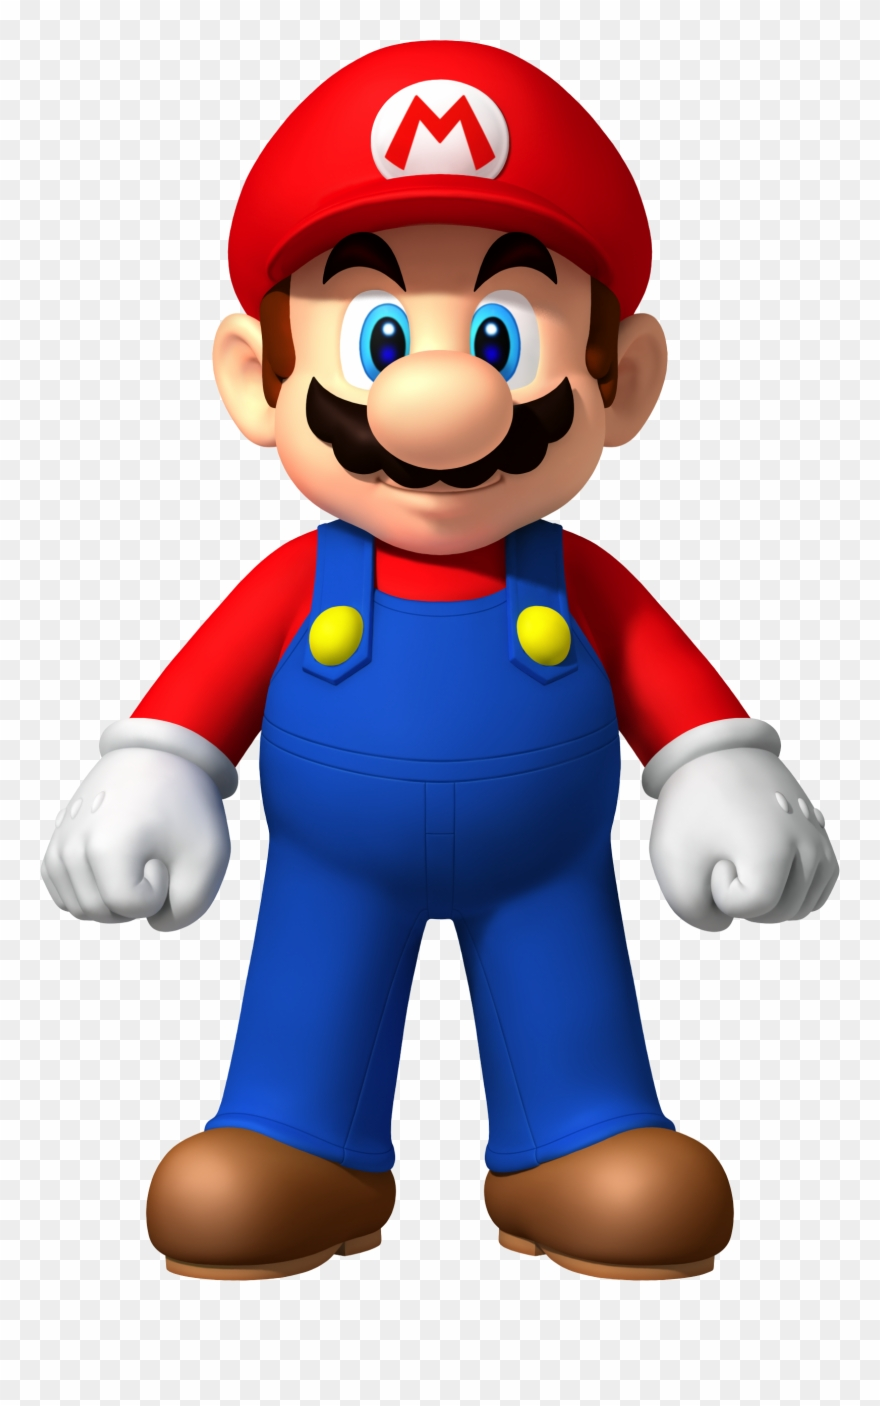 Brothers clip art bros. Brother clipart mario bro